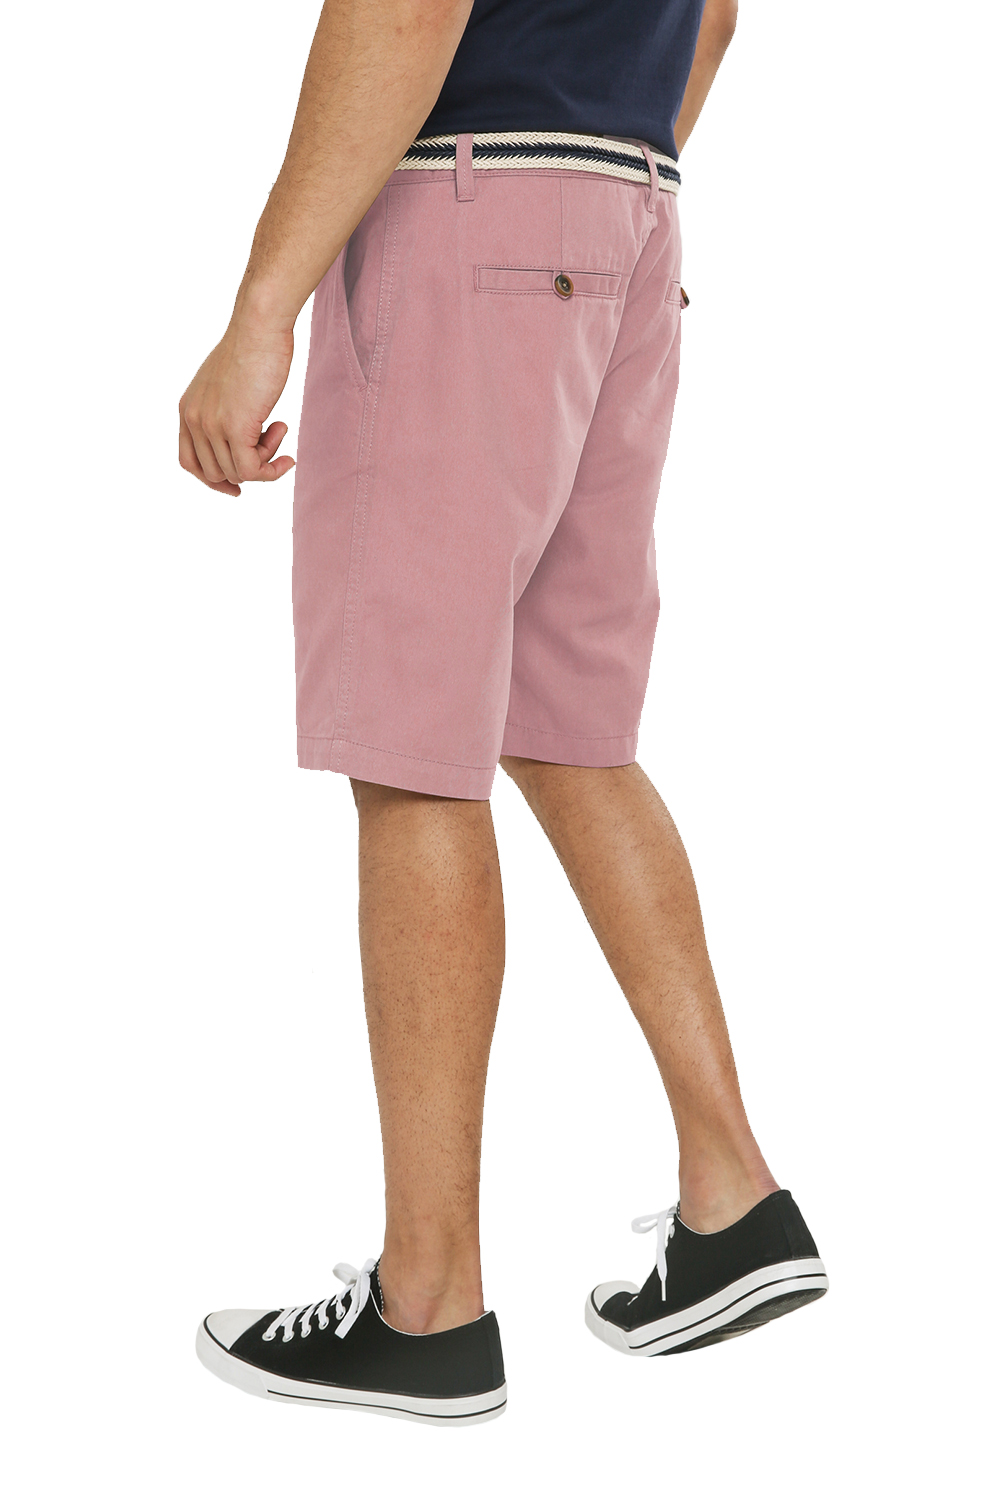 Threadbare-Mens-Slim-Fit-Belted-Chino-Shorts-Summer-Casual-Cotton-Smart-Bottoms thumbnail 41